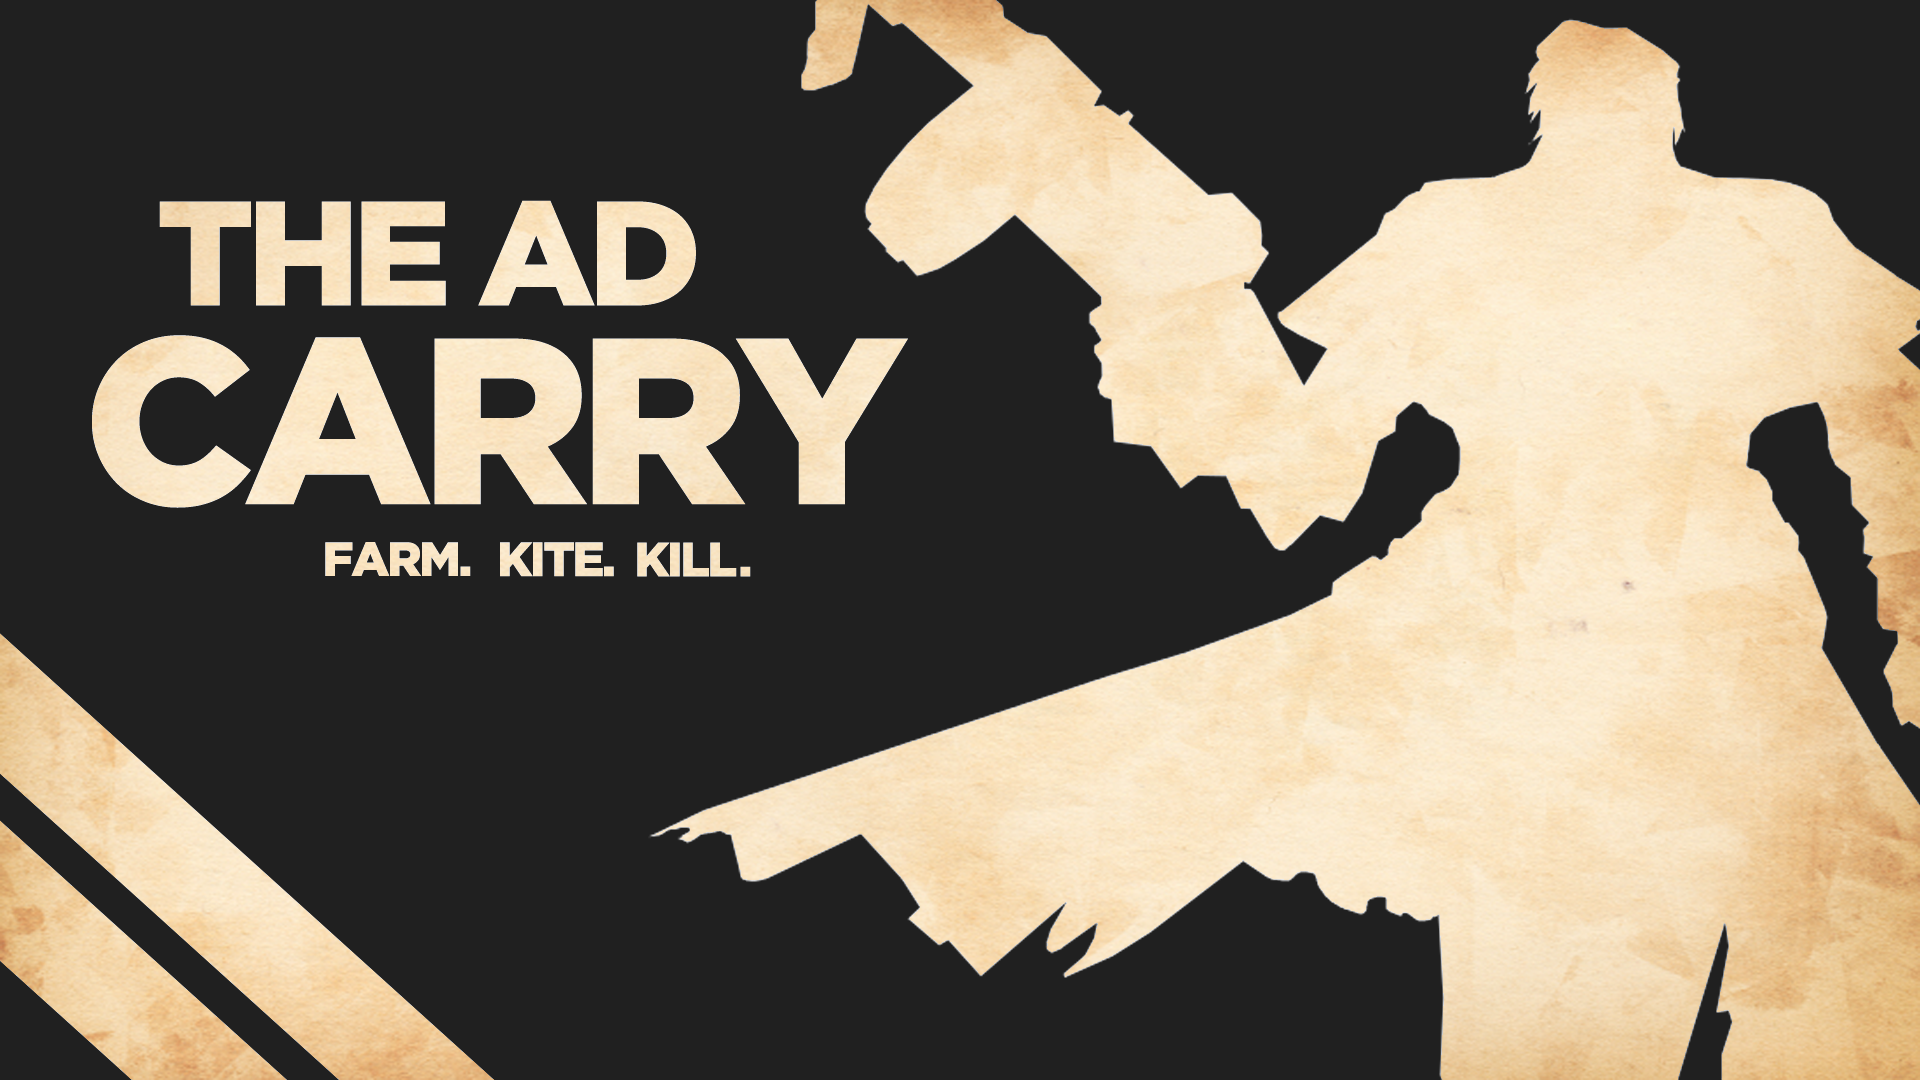 The AD Carry Full HD Wallpaper and Hintergrund | 1920x1080 ...